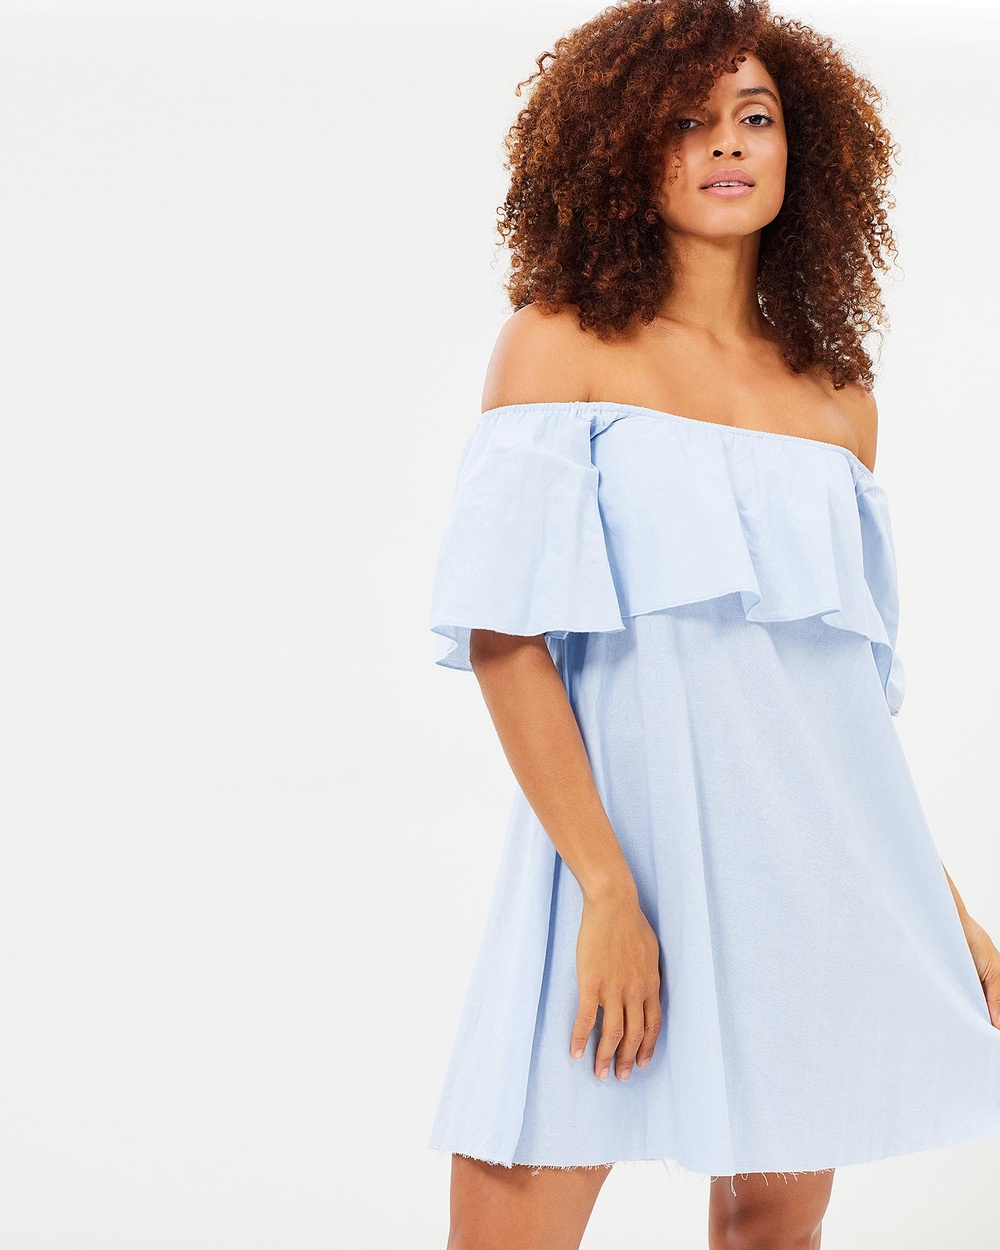 Tee Ink Ocean Avenue Off Shoulder Ruffle Dress Dresses Clouded Blue Ocean Avenue Off-Shoulder Ruffle Dress